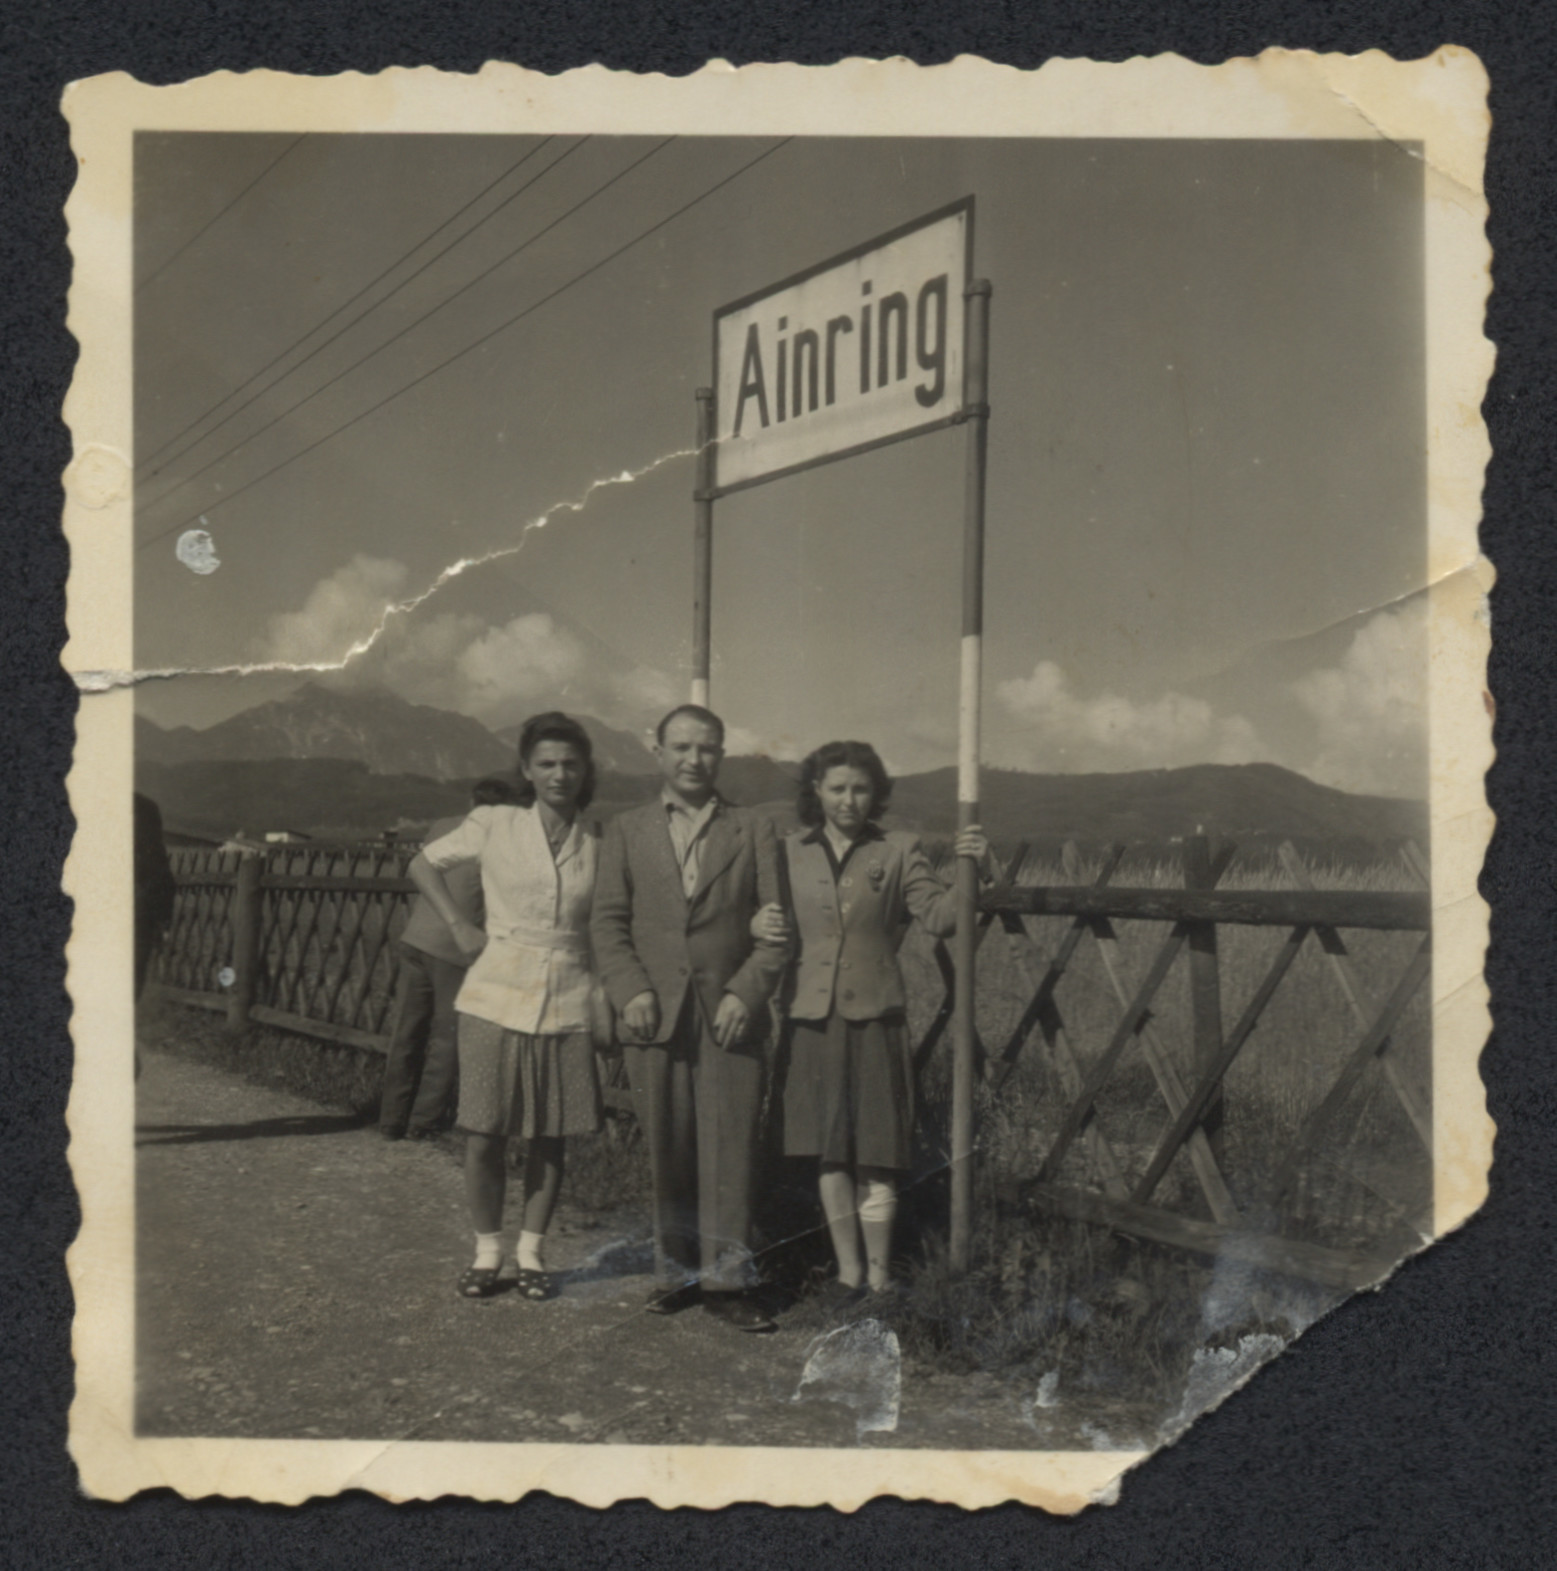 Hencia Wagner poses with two friends by the entrance of the Ainring displaced persons camp.